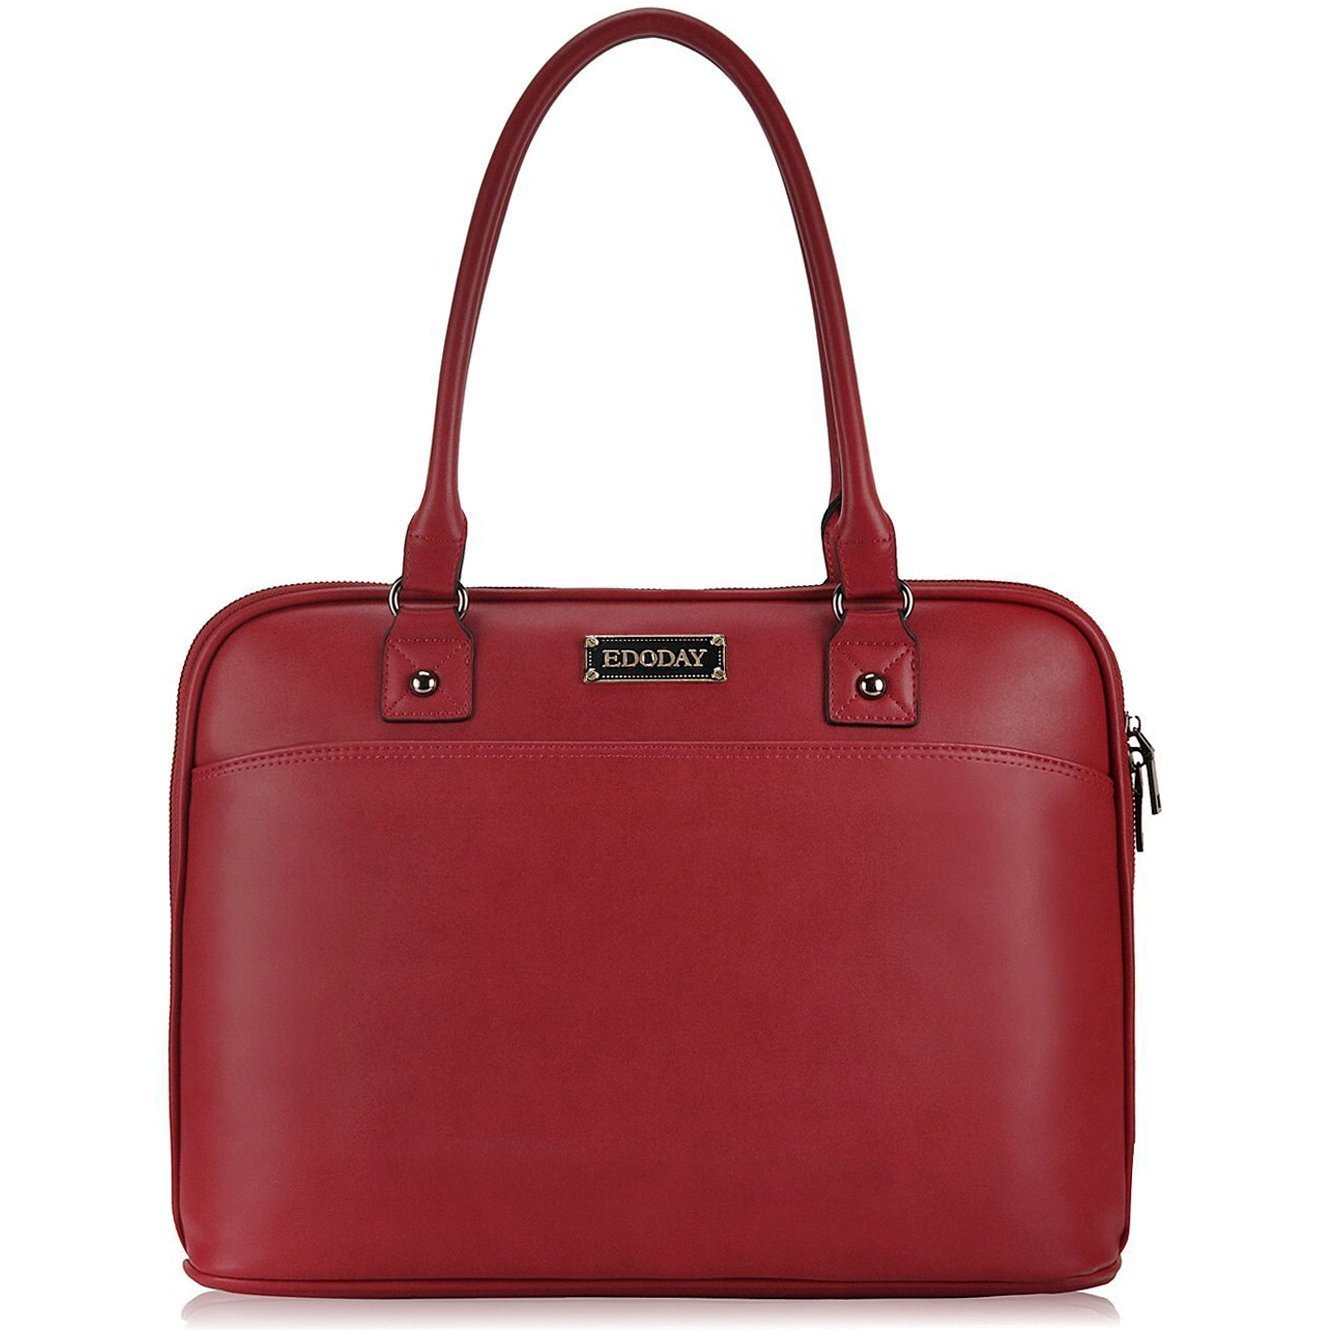 14-15.6 Inch Laptop Bag for Women,Full Zipper Open Laptop Tote Bag,Big Work Business Briefcase[Red] EDODAY lingyidaL0009-[red]